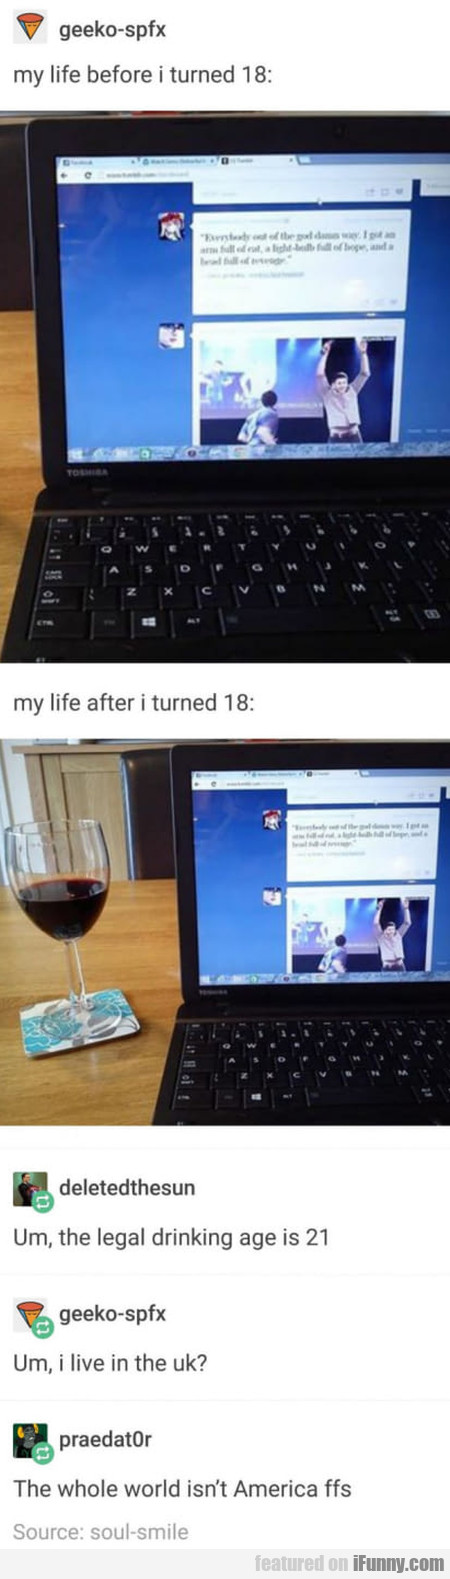 My life before I turned 18 - my life after...